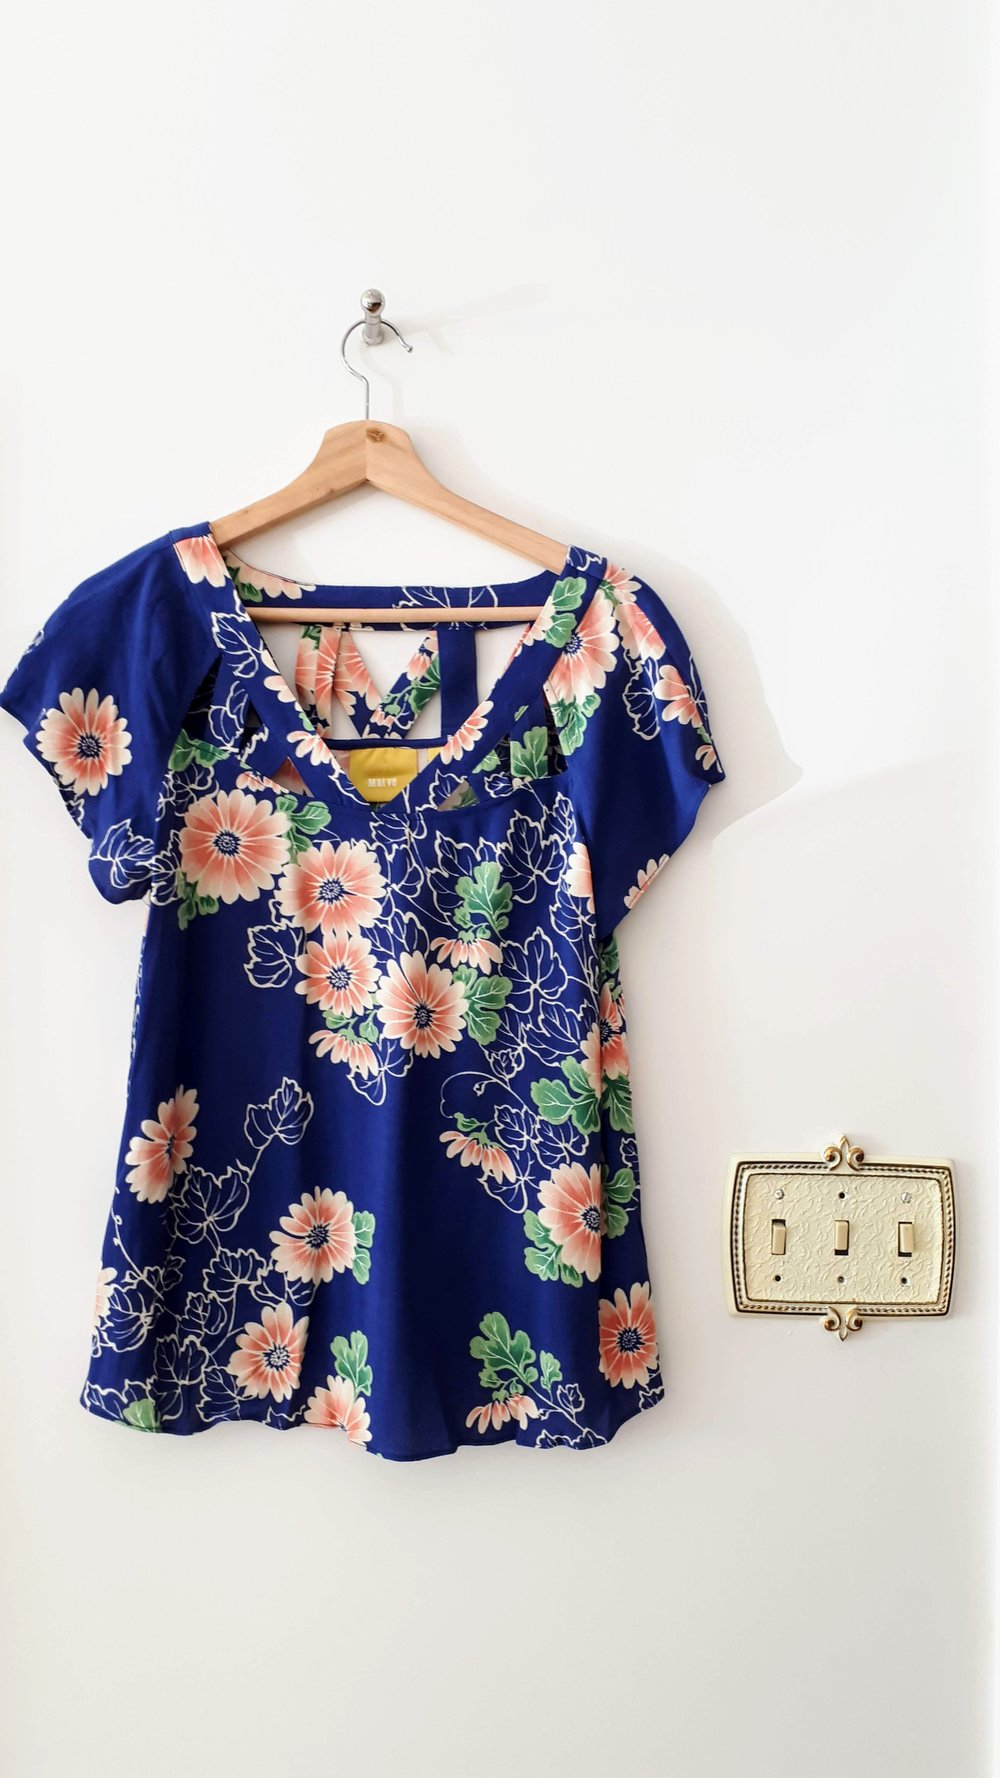 Maeve top; Size S, $26